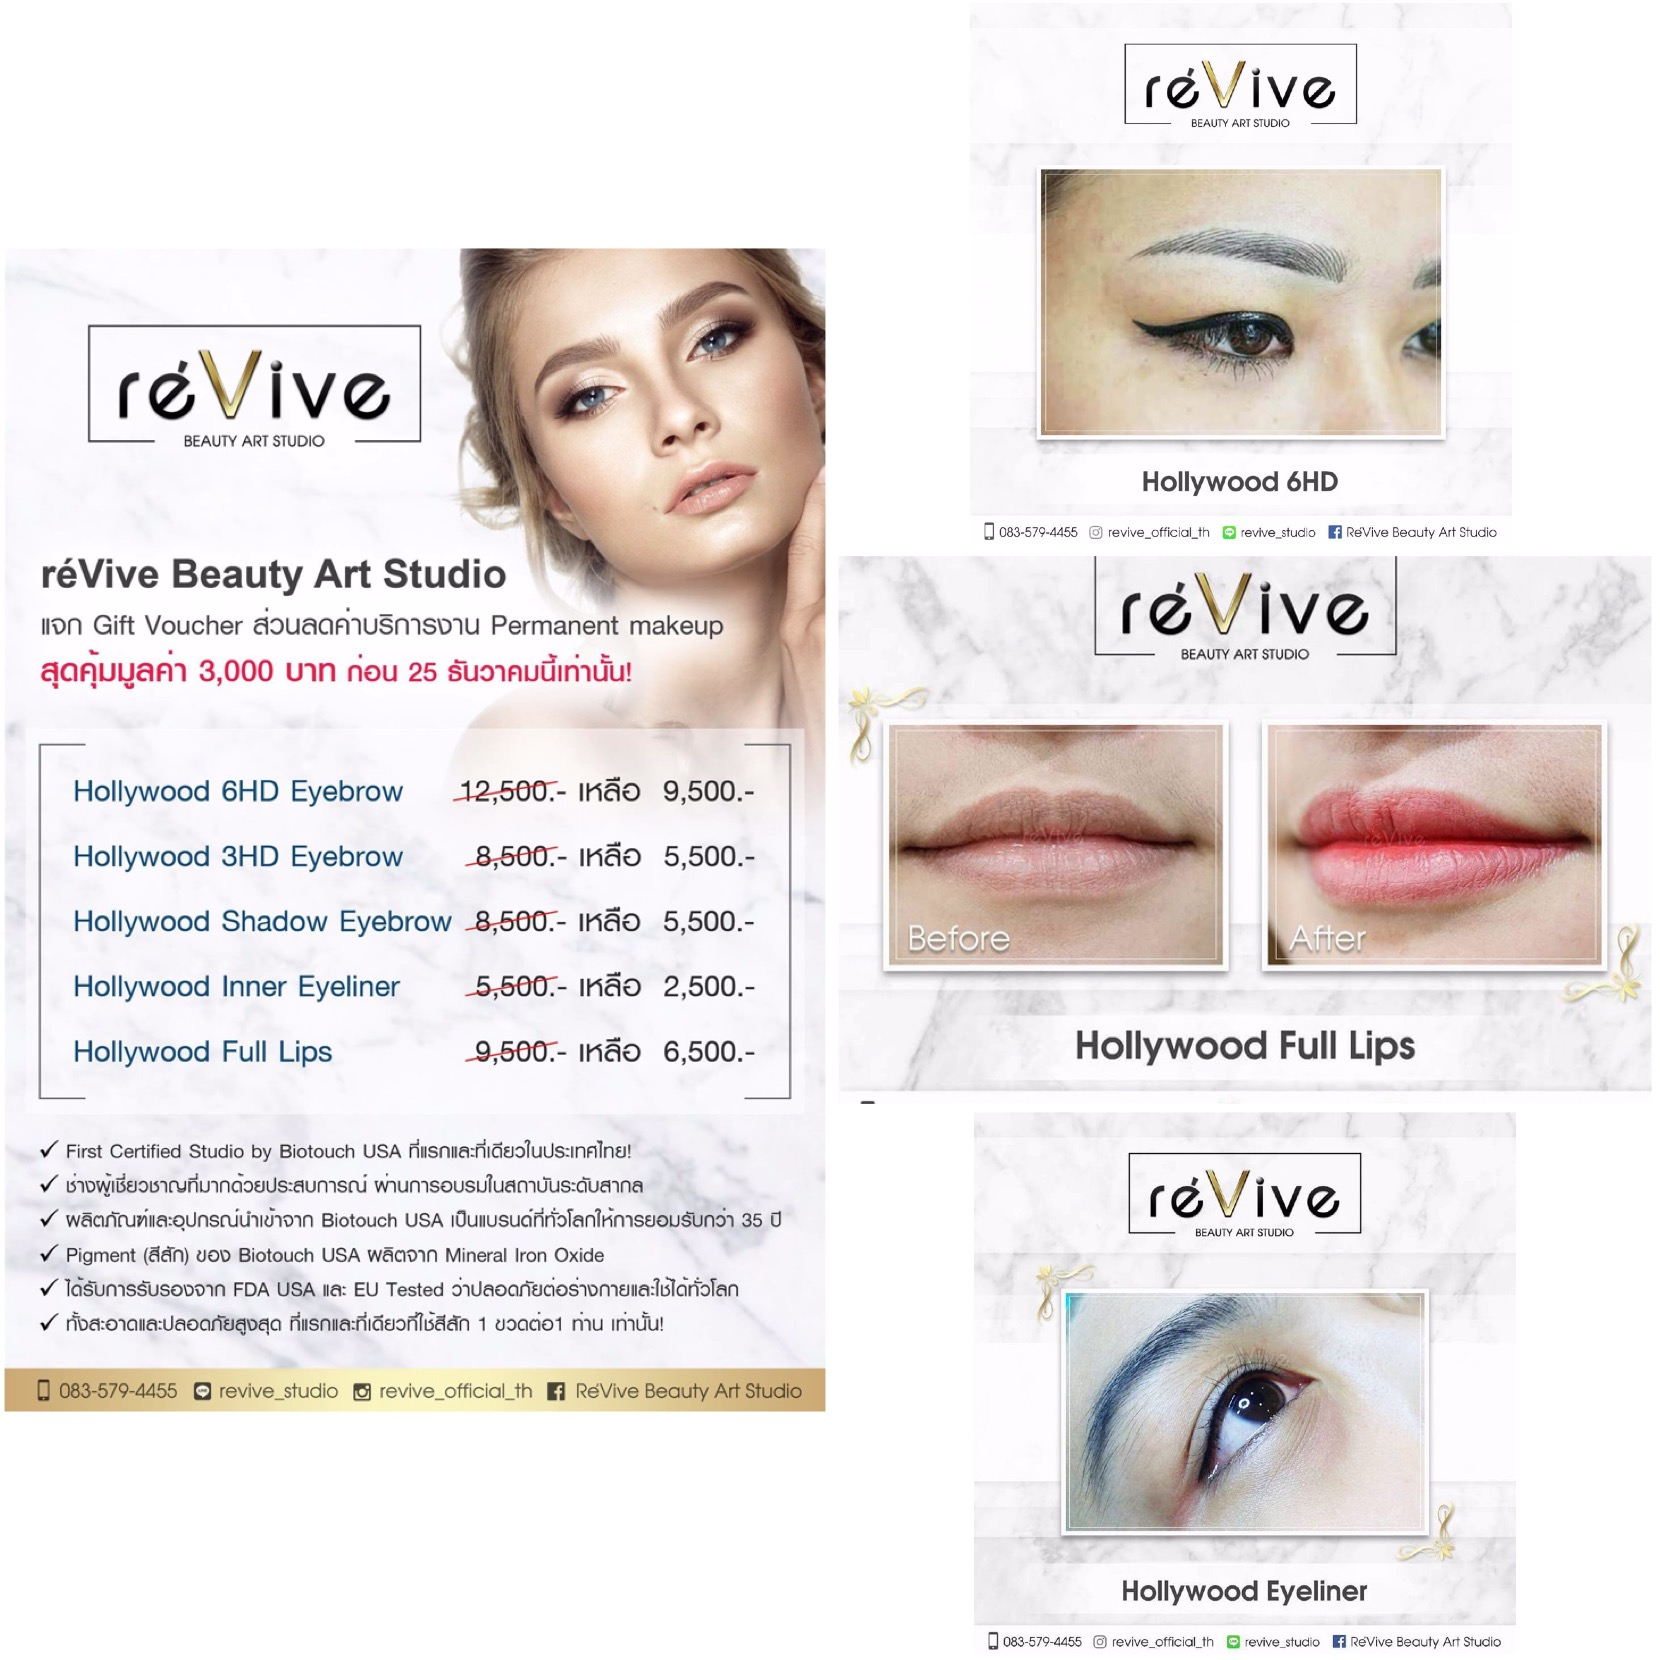 Special Price!! 3,000 THB Discount Voucher for Permanent Makeup at réVive Beauty Art Studio